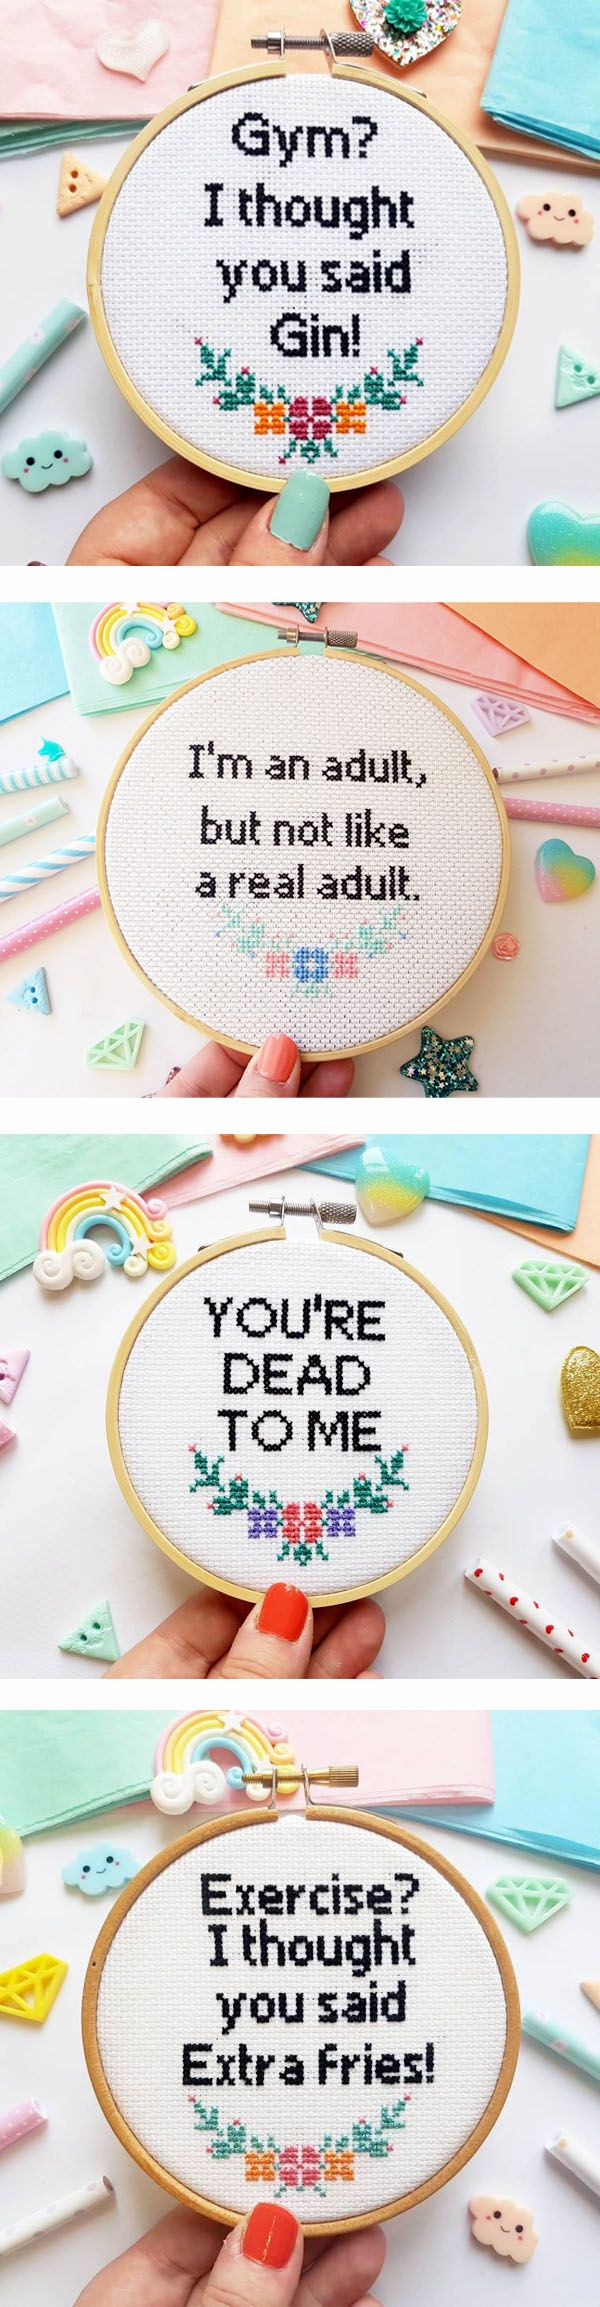 best cross stitch images on pinterest cross stitch embroidery